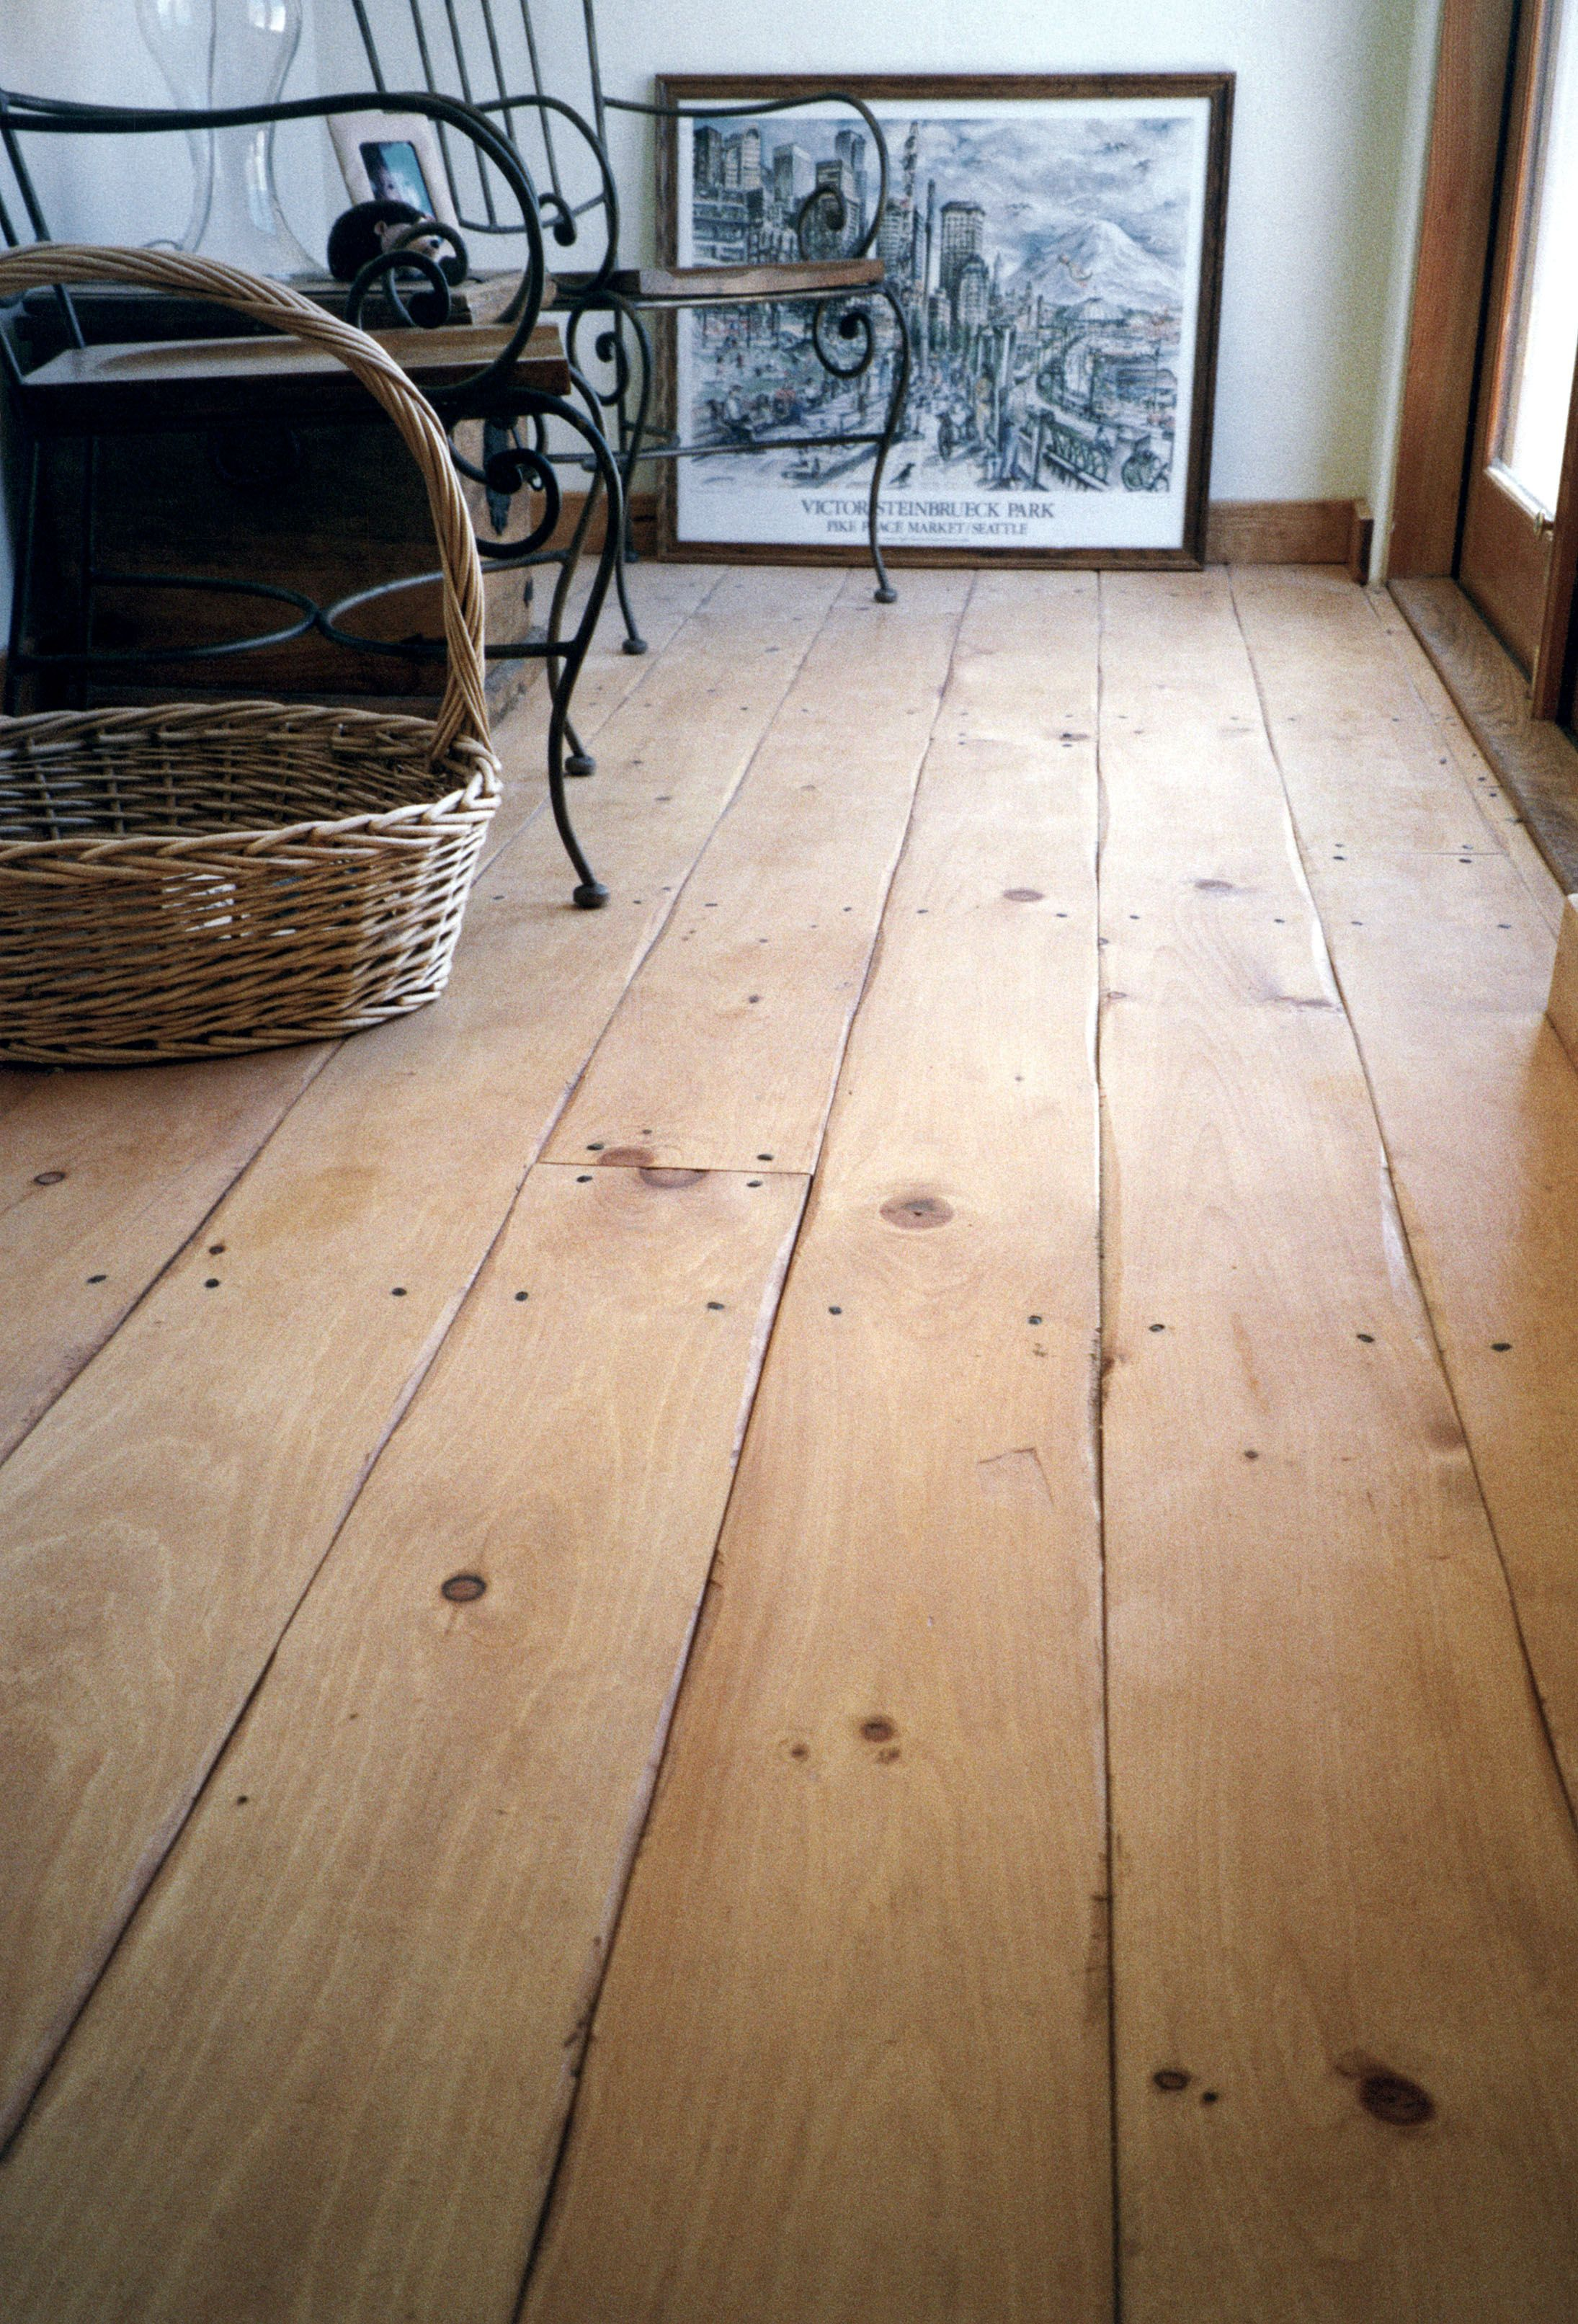 install design master wide laminate carlisle floors oak hit distressed a eastern white knotty or in miss pine flooring plank